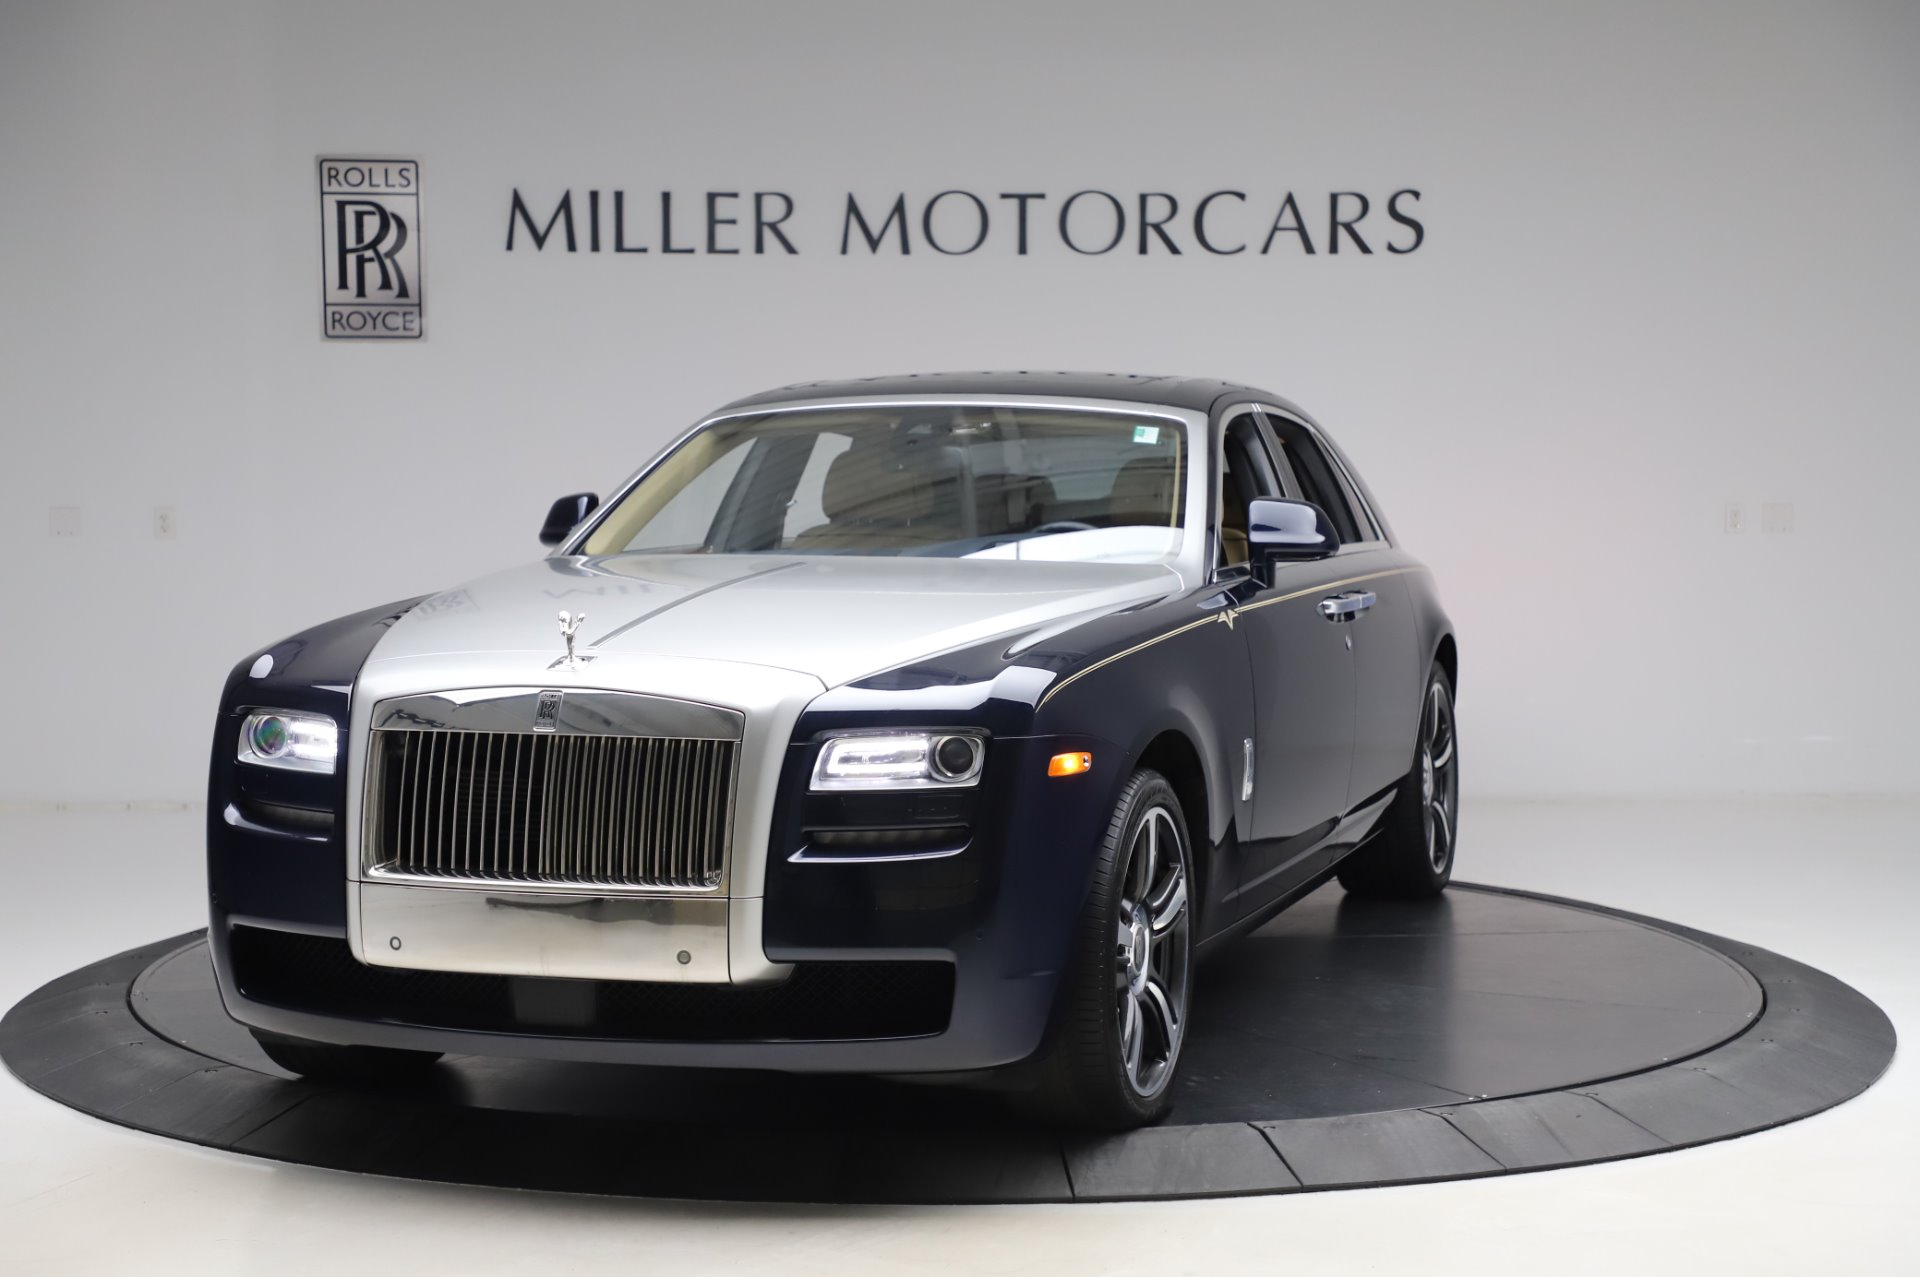 Used 2014 Rolls-Royce Ghost V-Spec for sale Sold at Bentley Greenwich in Greenwich CT 06830 1